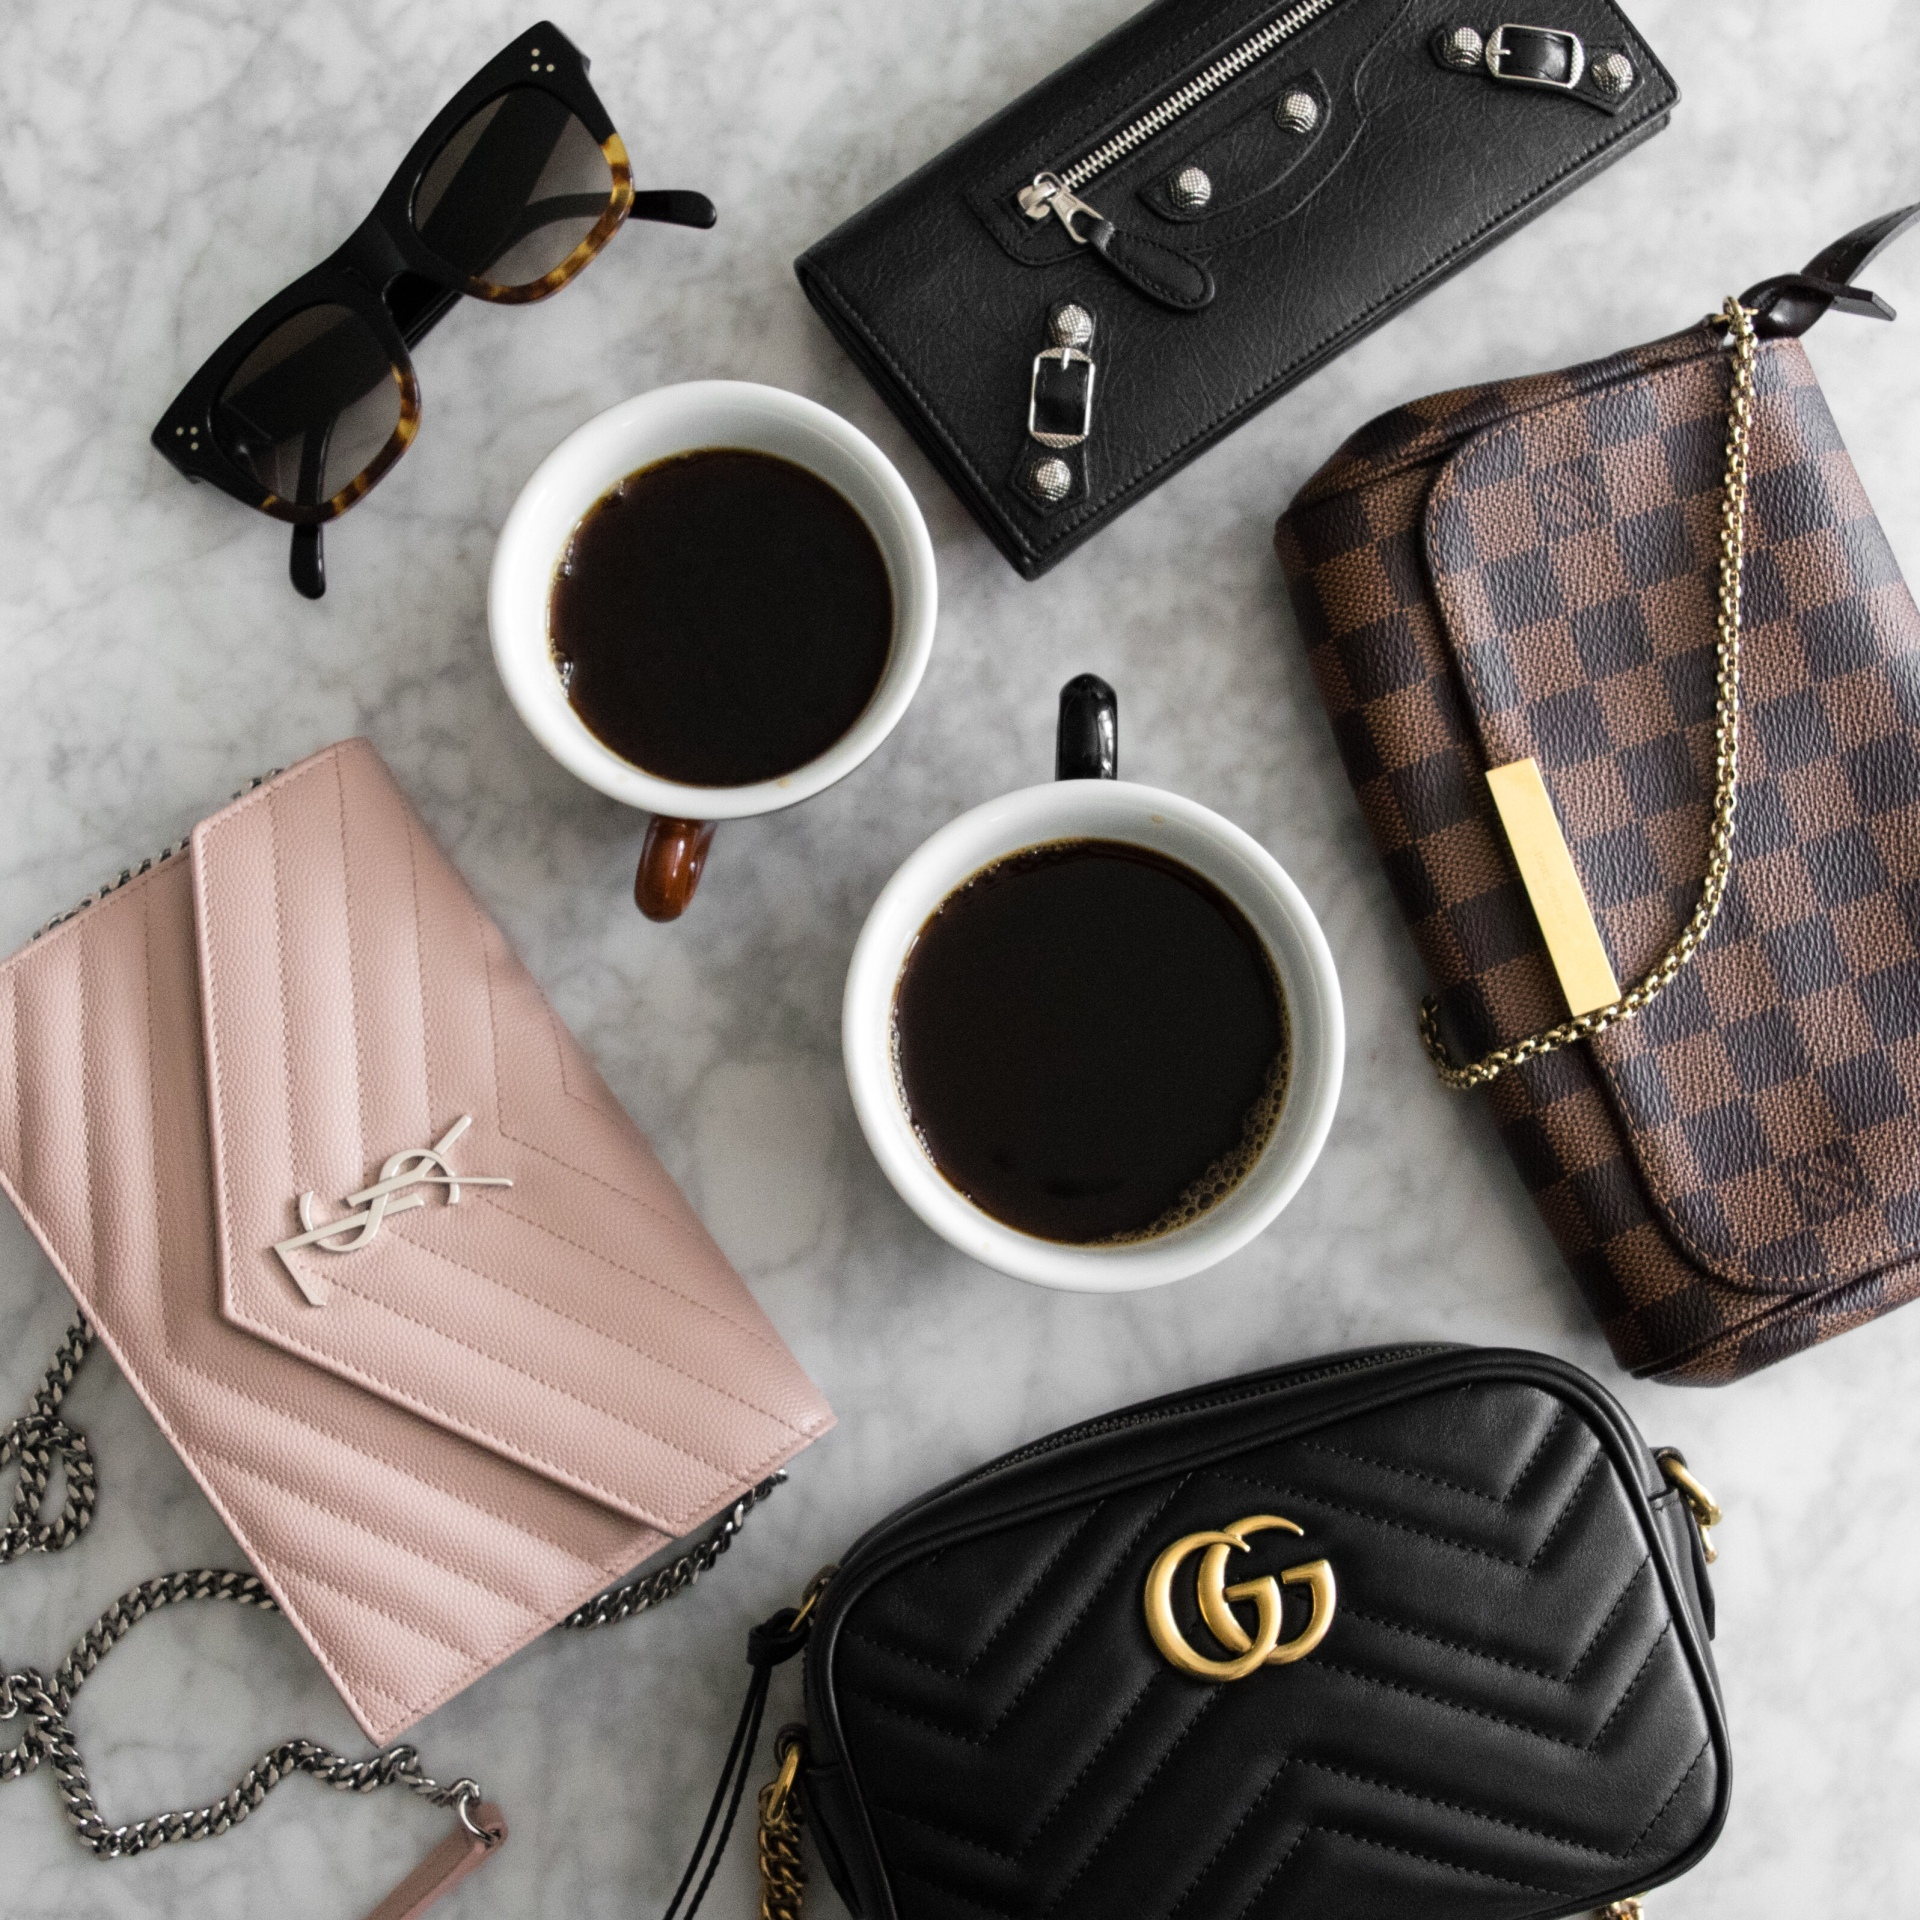 Gucci Marmont Mini Camera size comparison with LV Favorite PM and YSL WOC | CoffeeAndHandbags.com